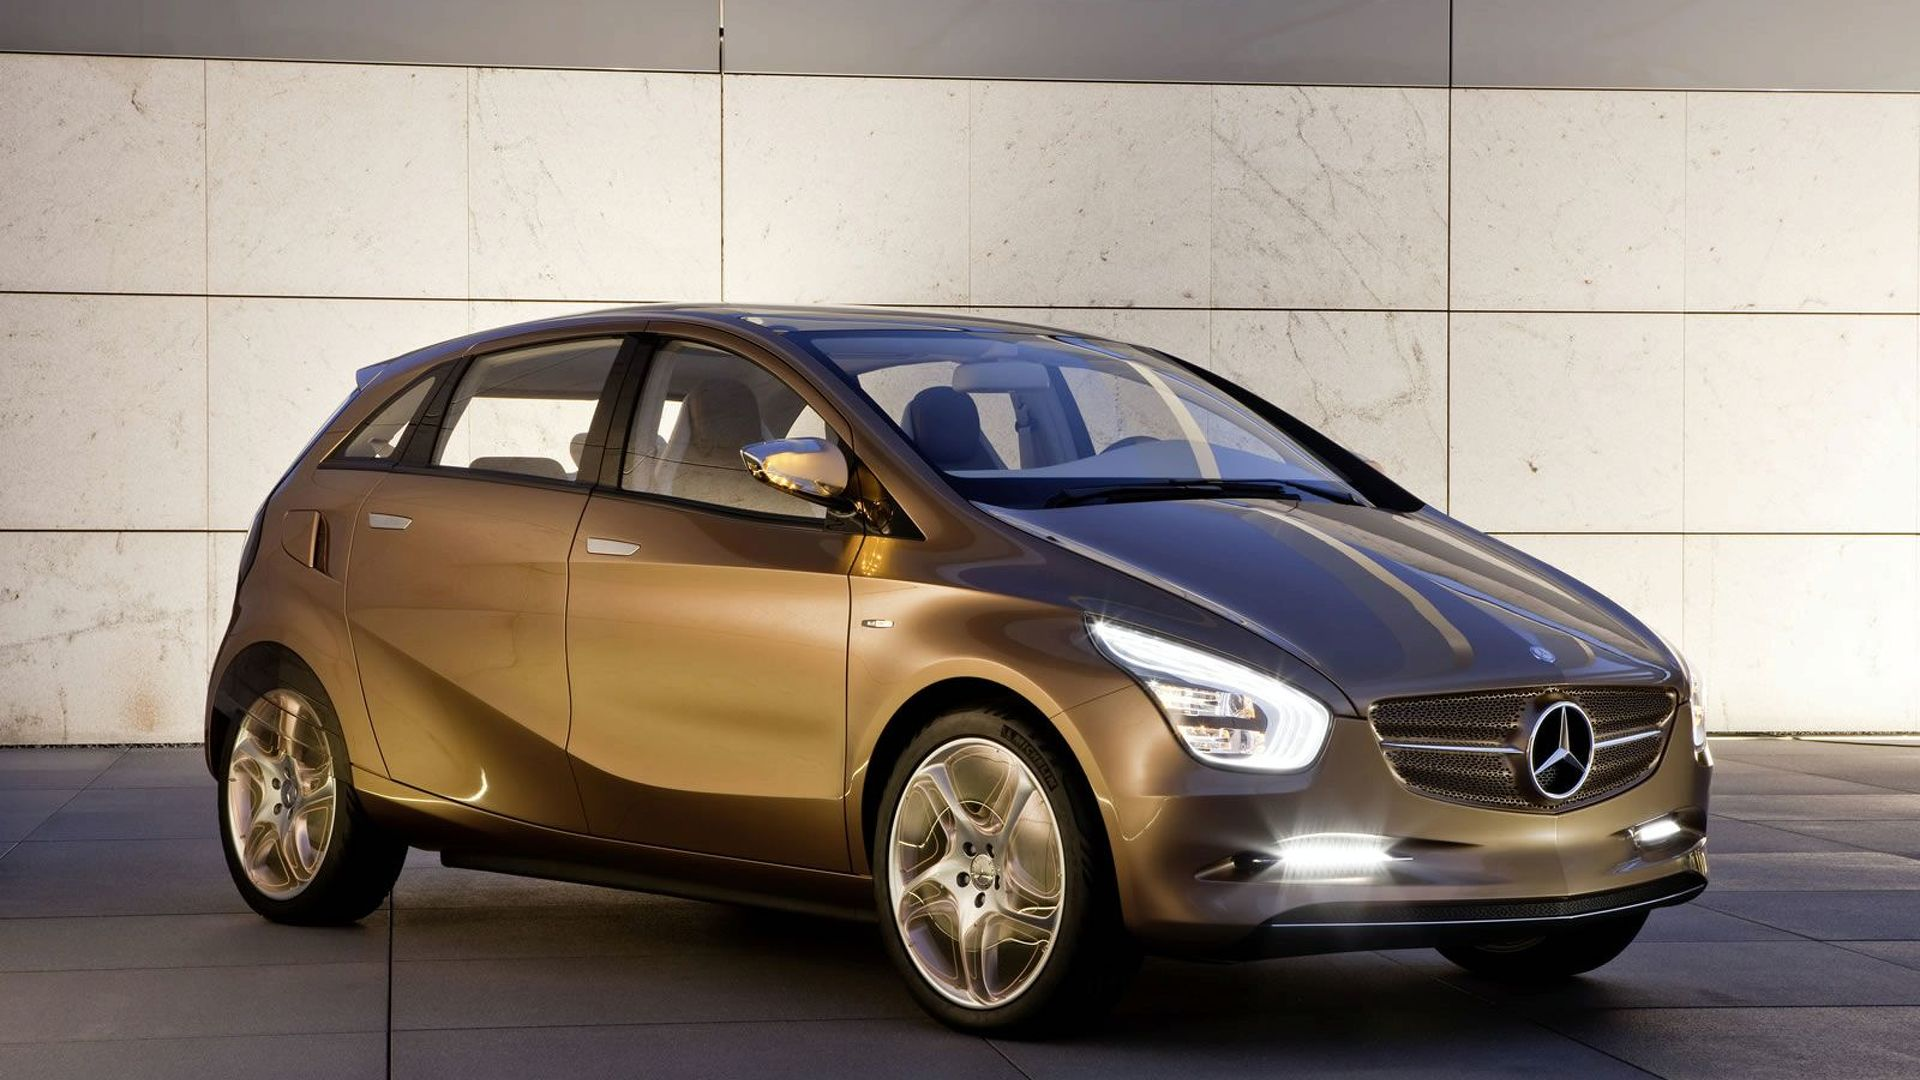 Daimler to Name Compact Car Partner in mid-2010